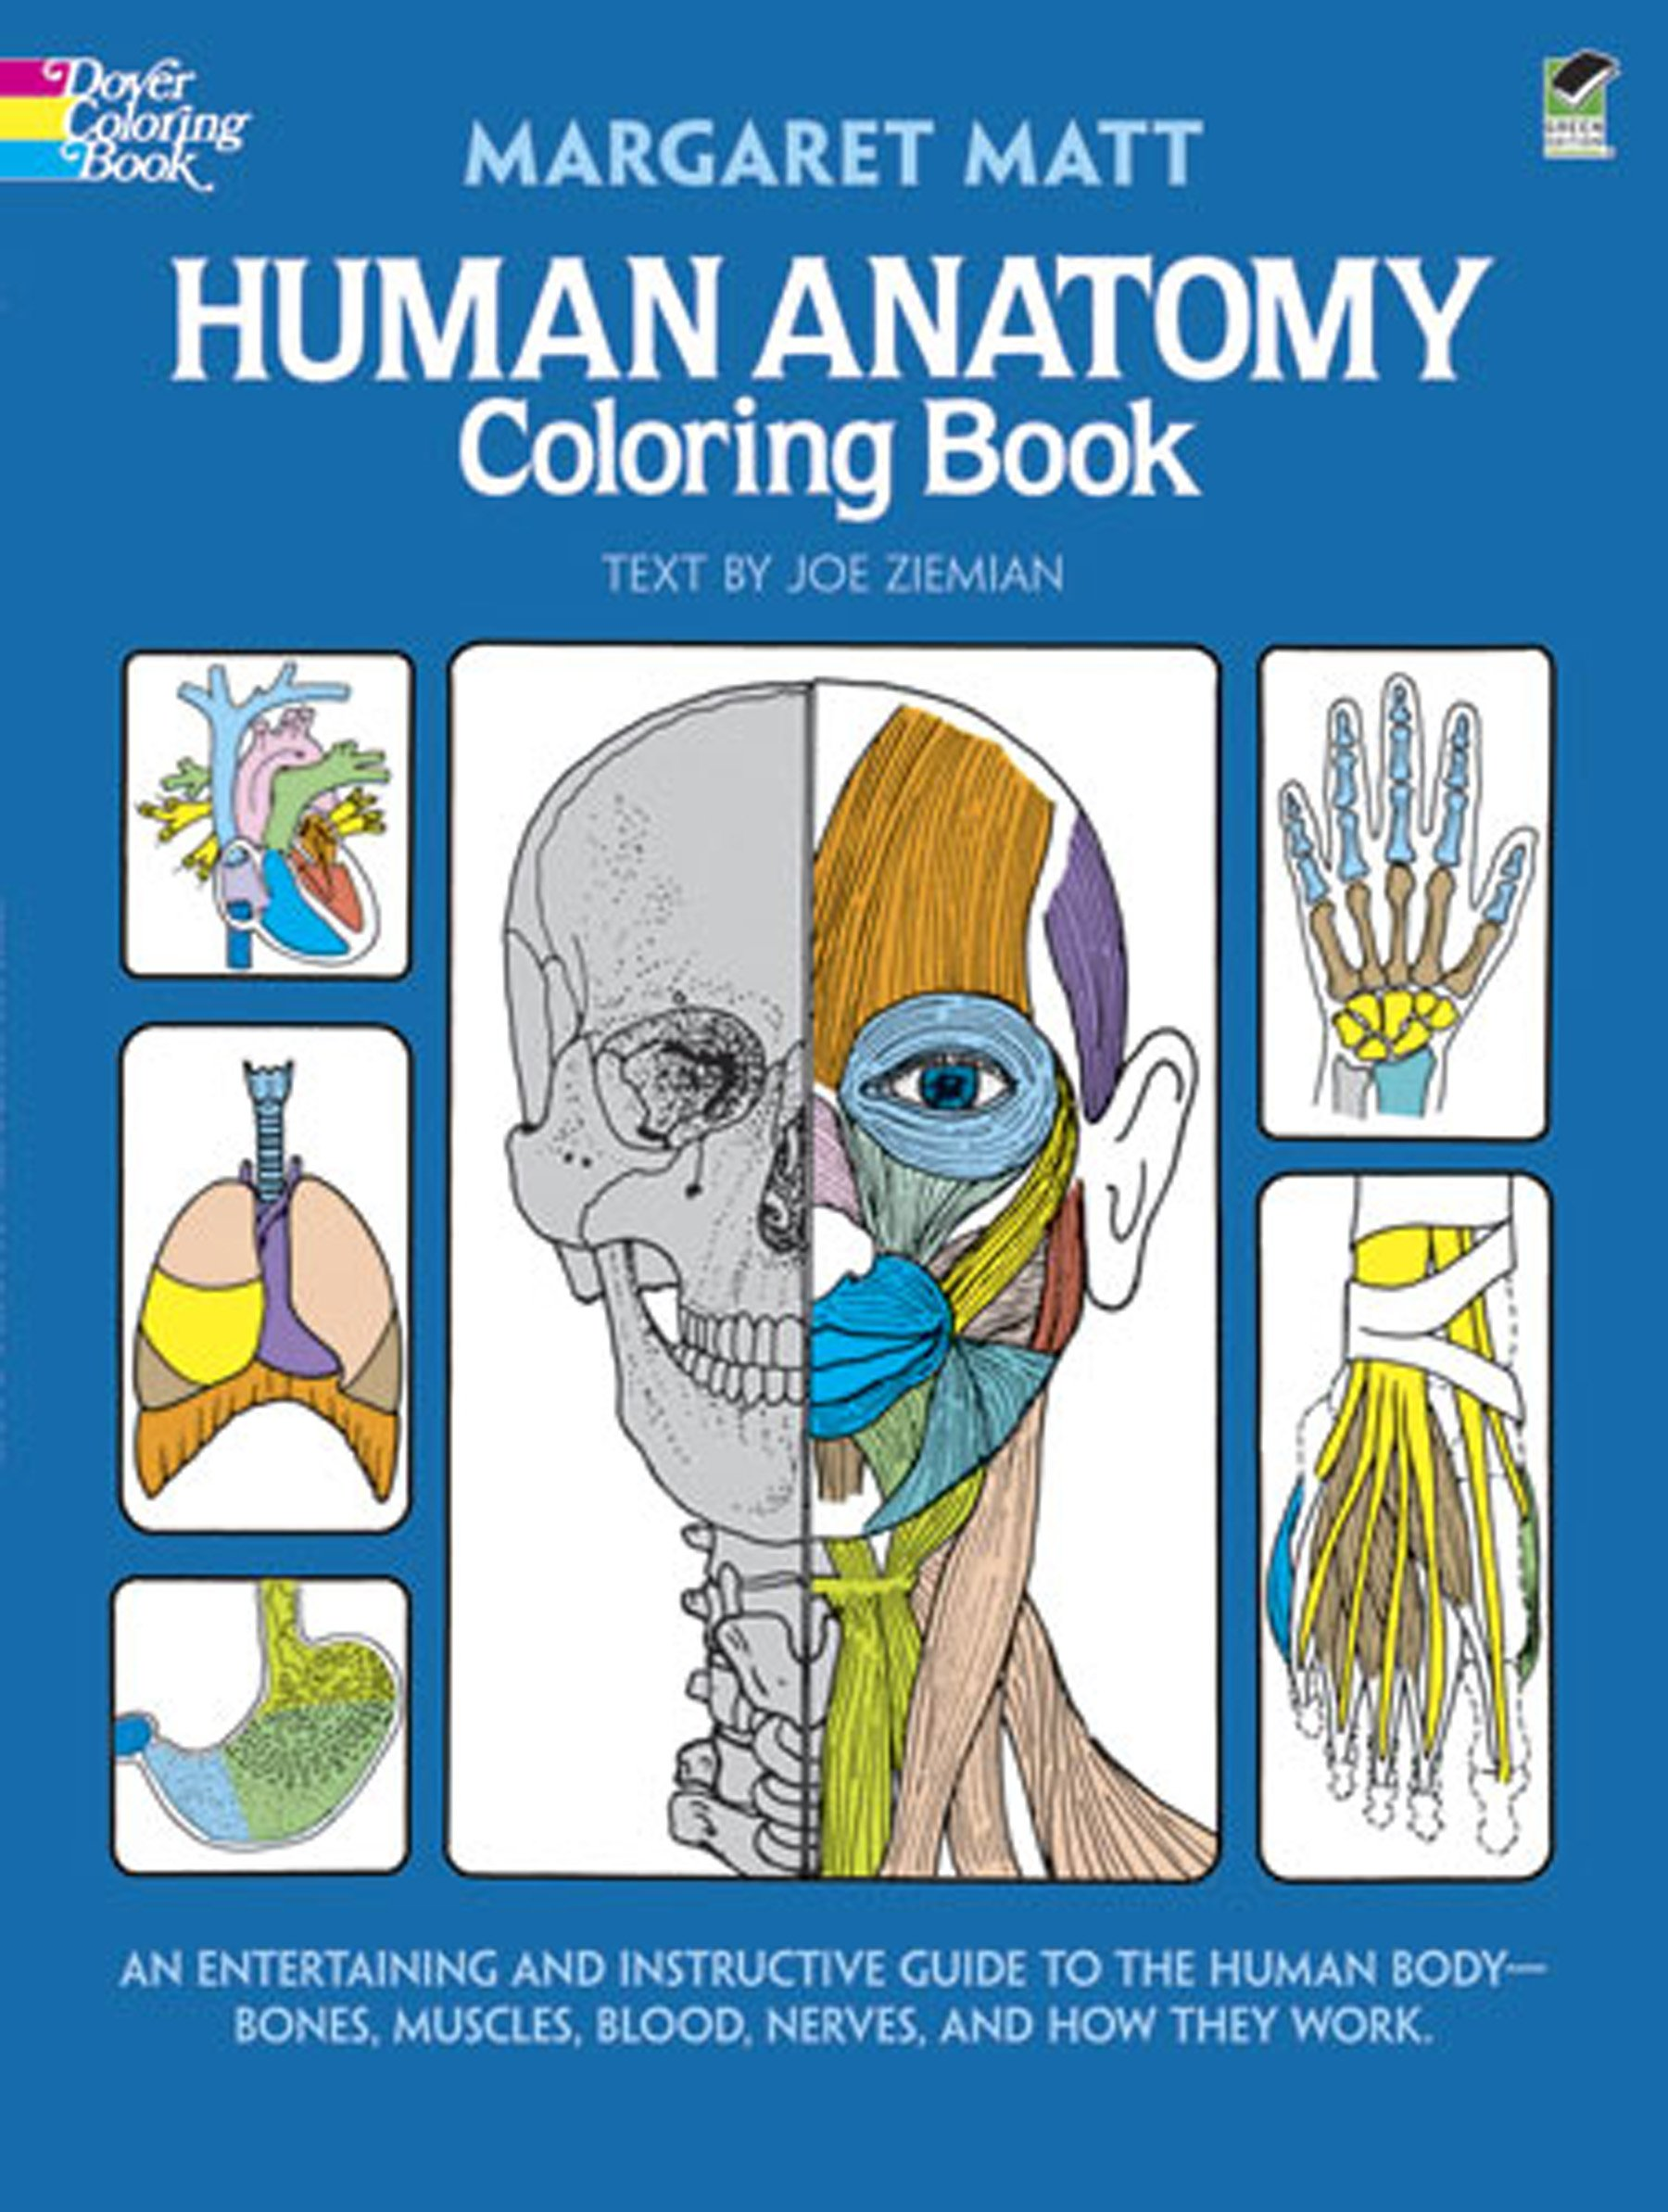 Human Anatomy Coloring Book Margaret Matt Joe Ziemian 8601404263682 Physiology Amazon Canada